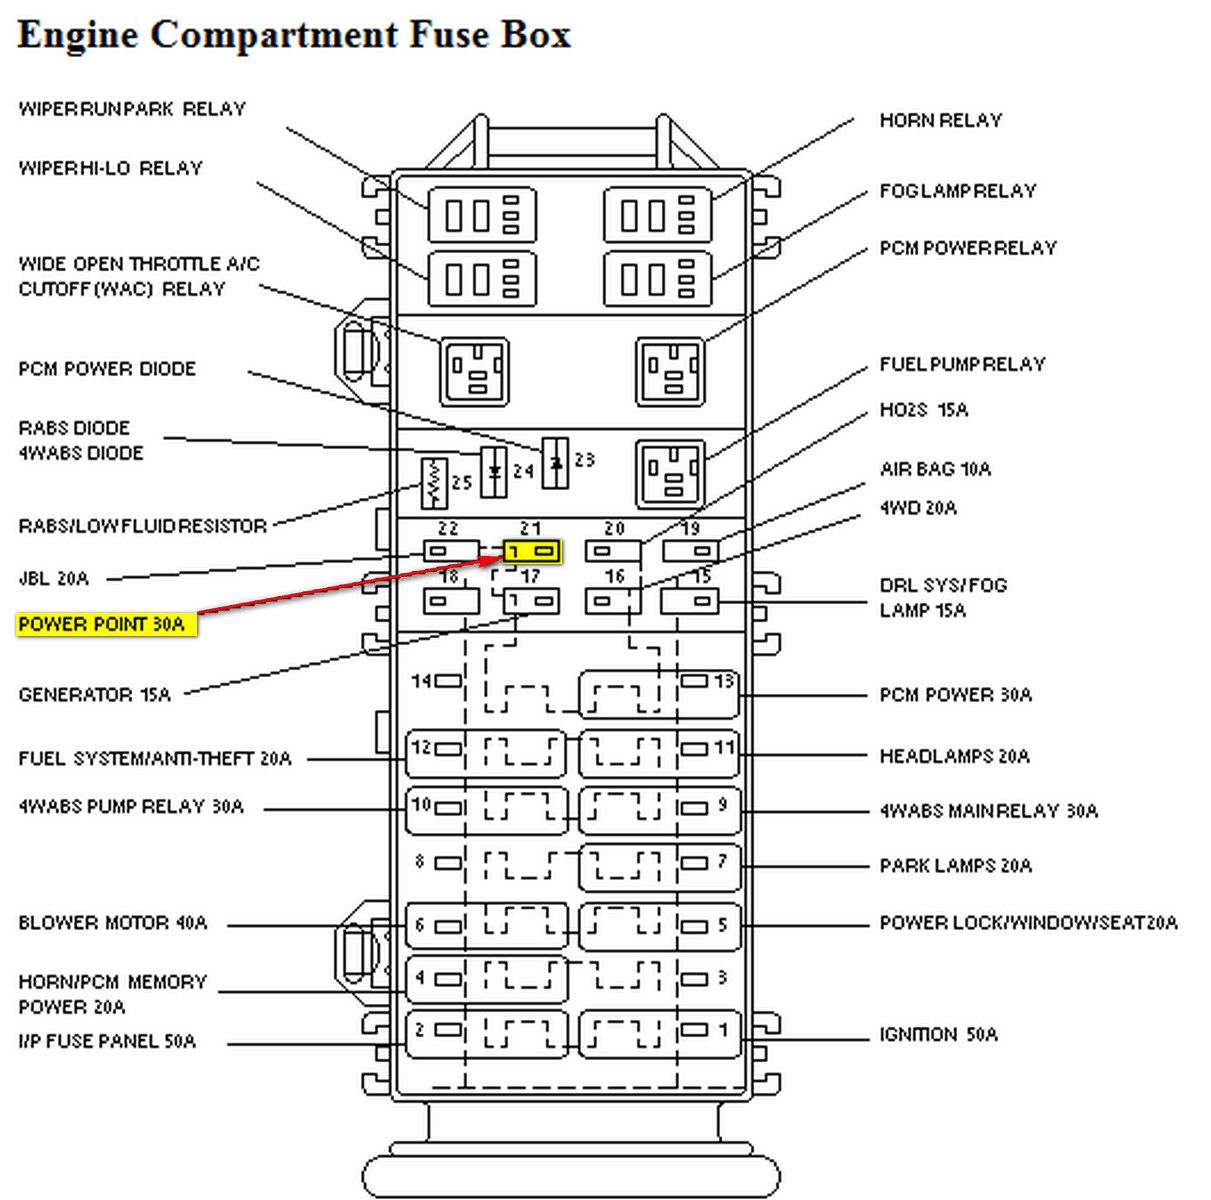 8a55967da7ae1bd251b795845886bd24 2002 ford ranger fuse diagram 1997 ford ranger fuse box diagram 2002 ford explorer interior fuse box diagram at webbmarketing.co